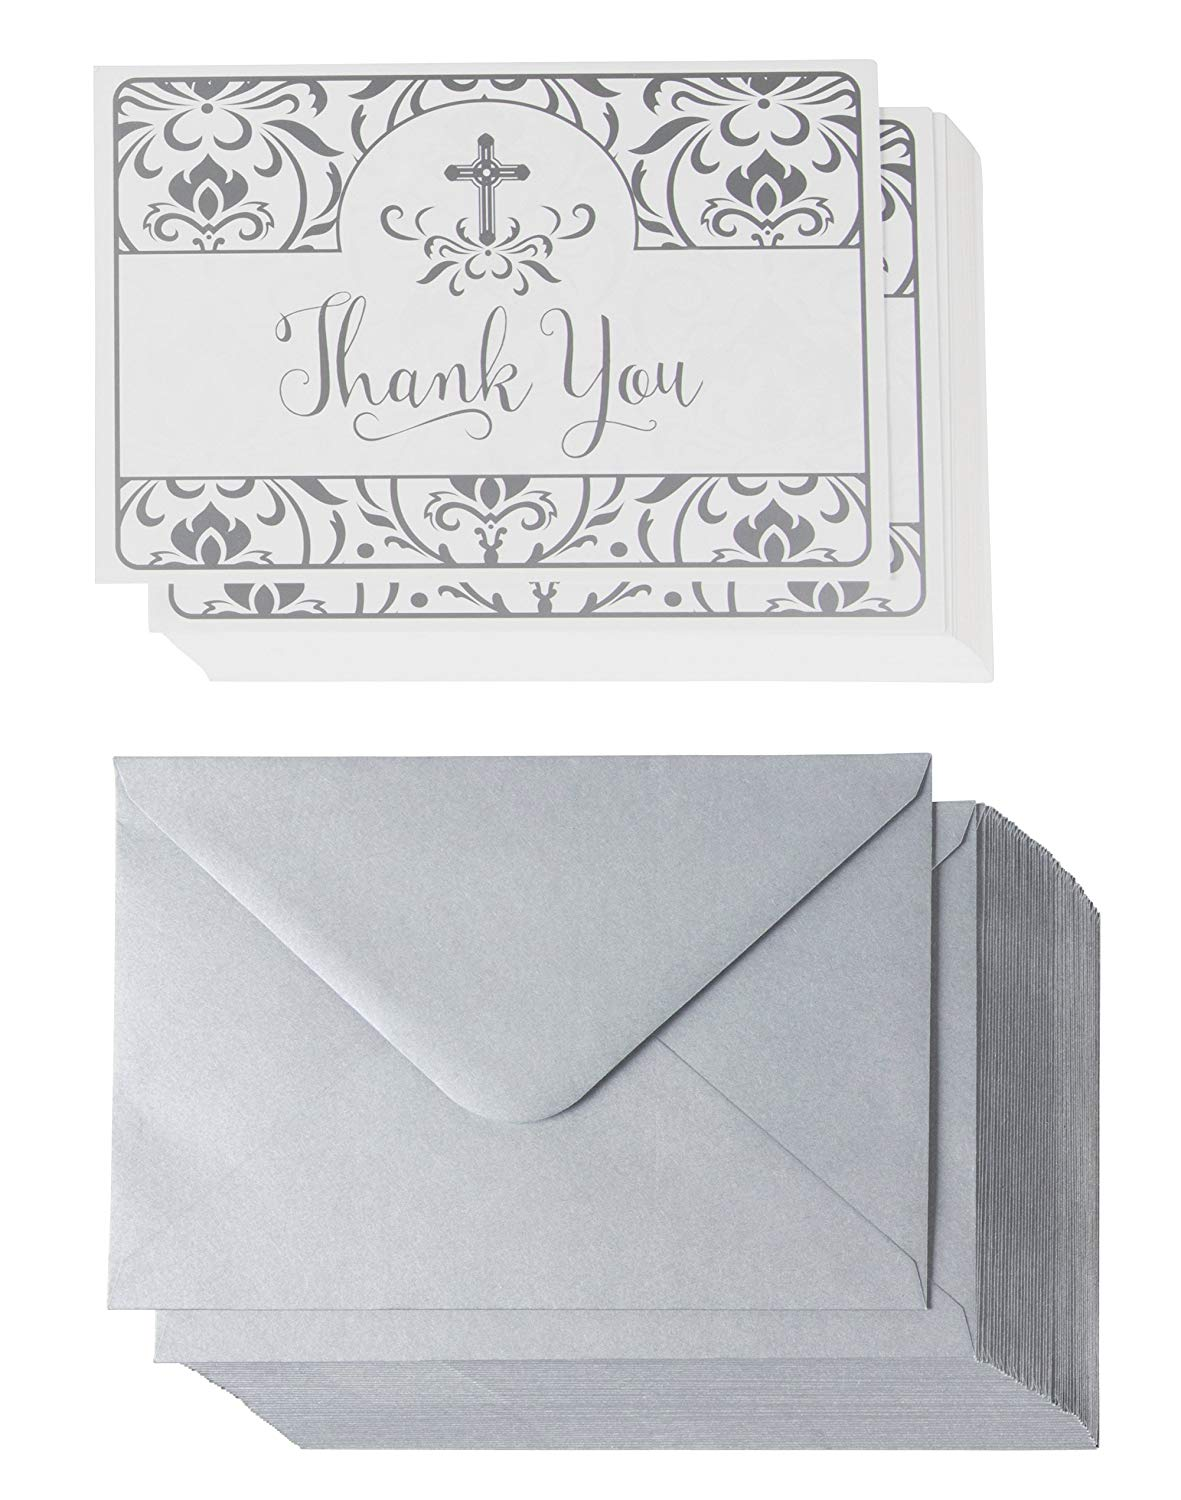 cheap thank you cards design find thank you cards design deals on